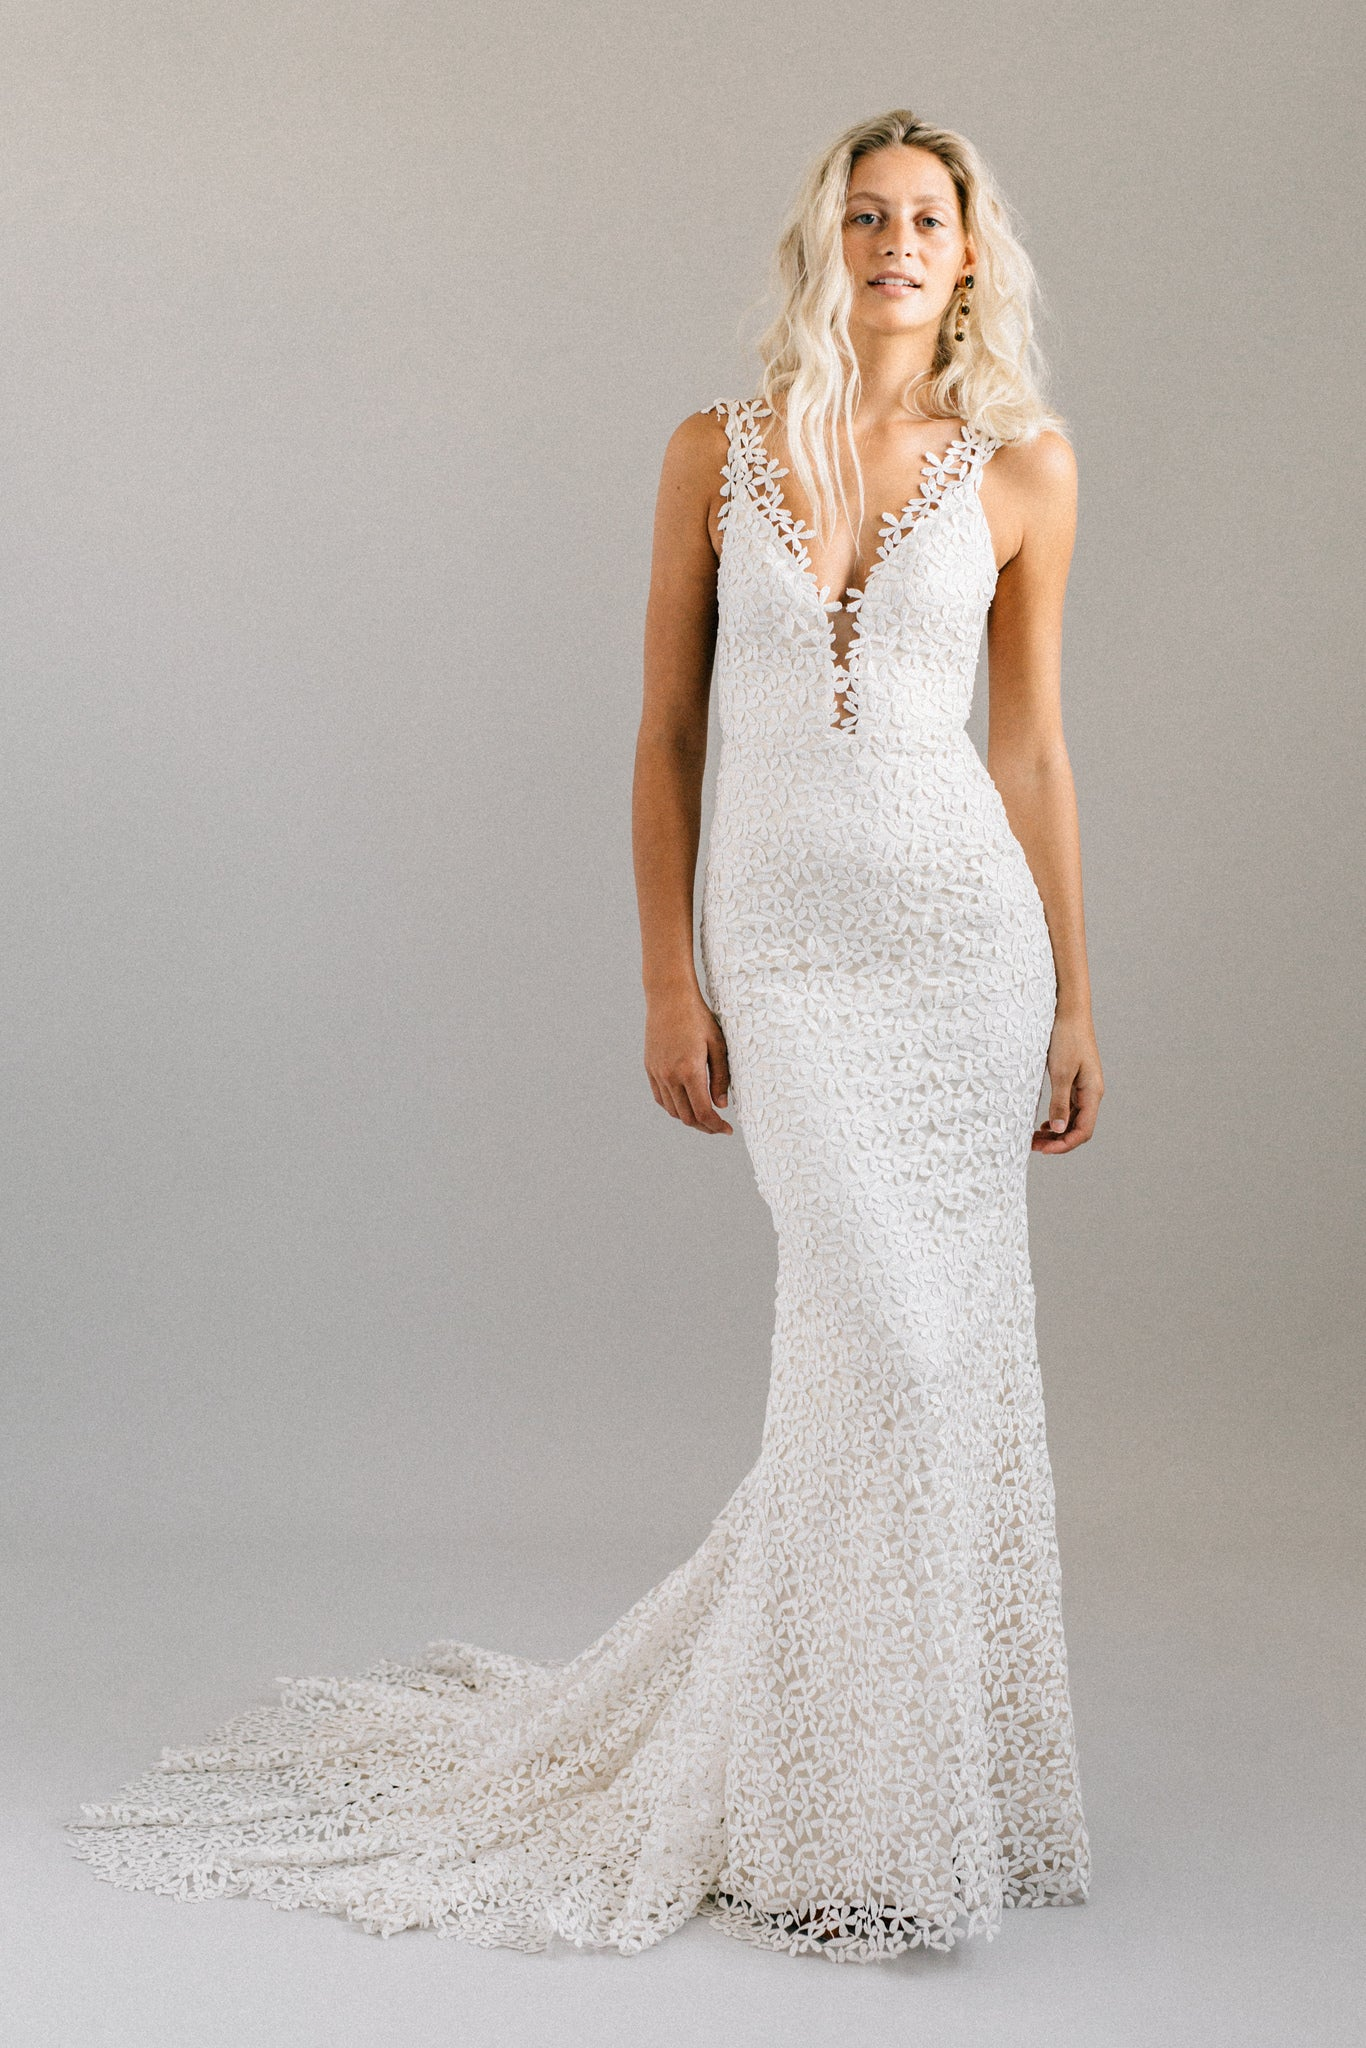 Flower print mermaid wedding dress with an open back, extra long train and a plunging neckline